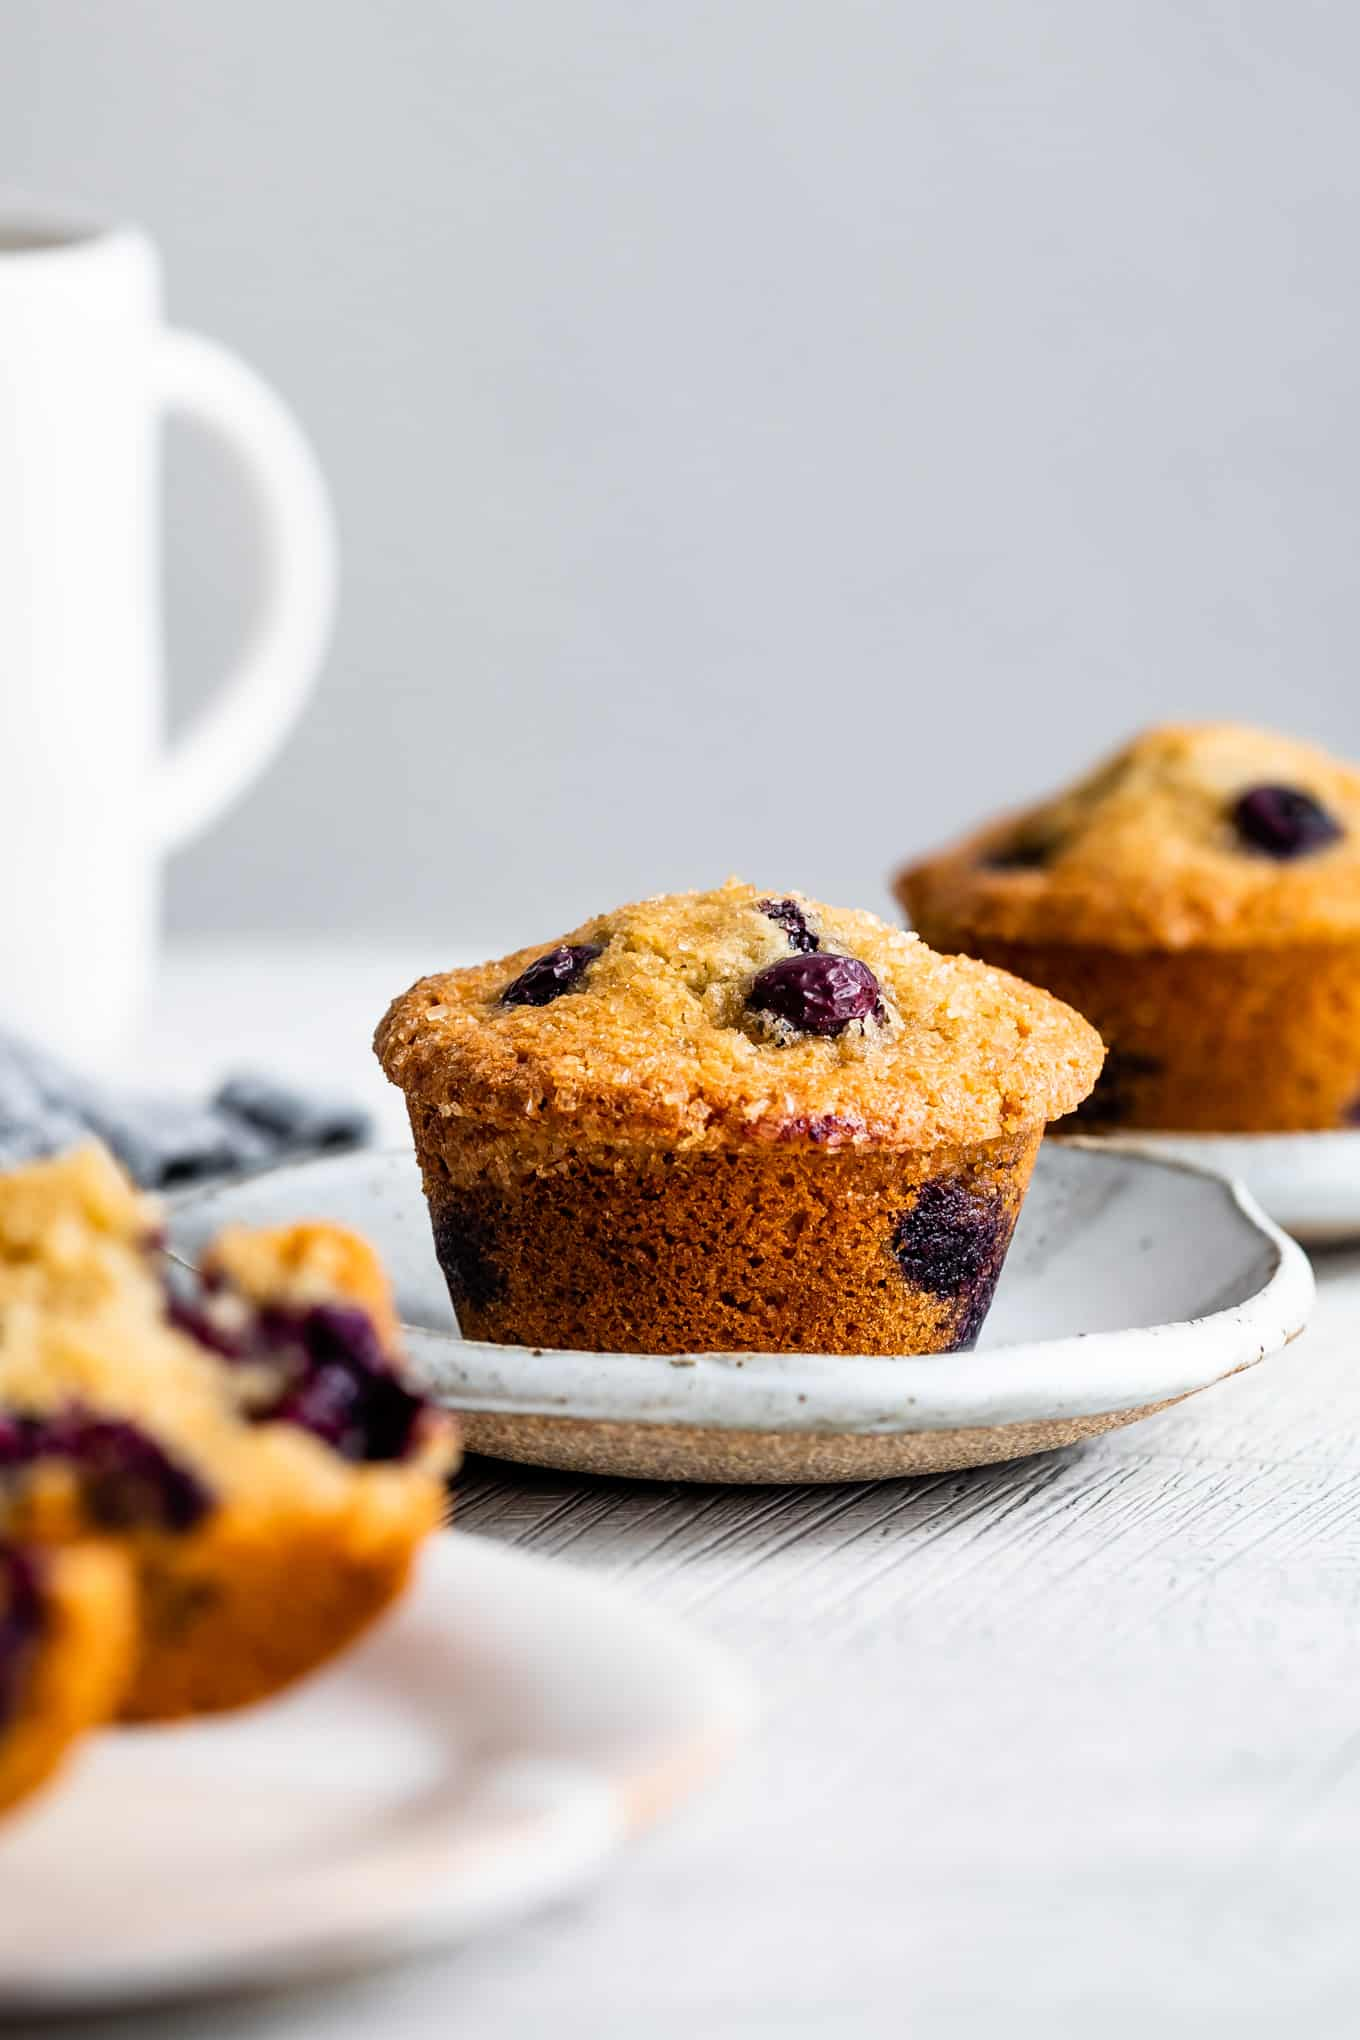 Gluten-Free Blueberry Muffin Recipe with Almond Flour